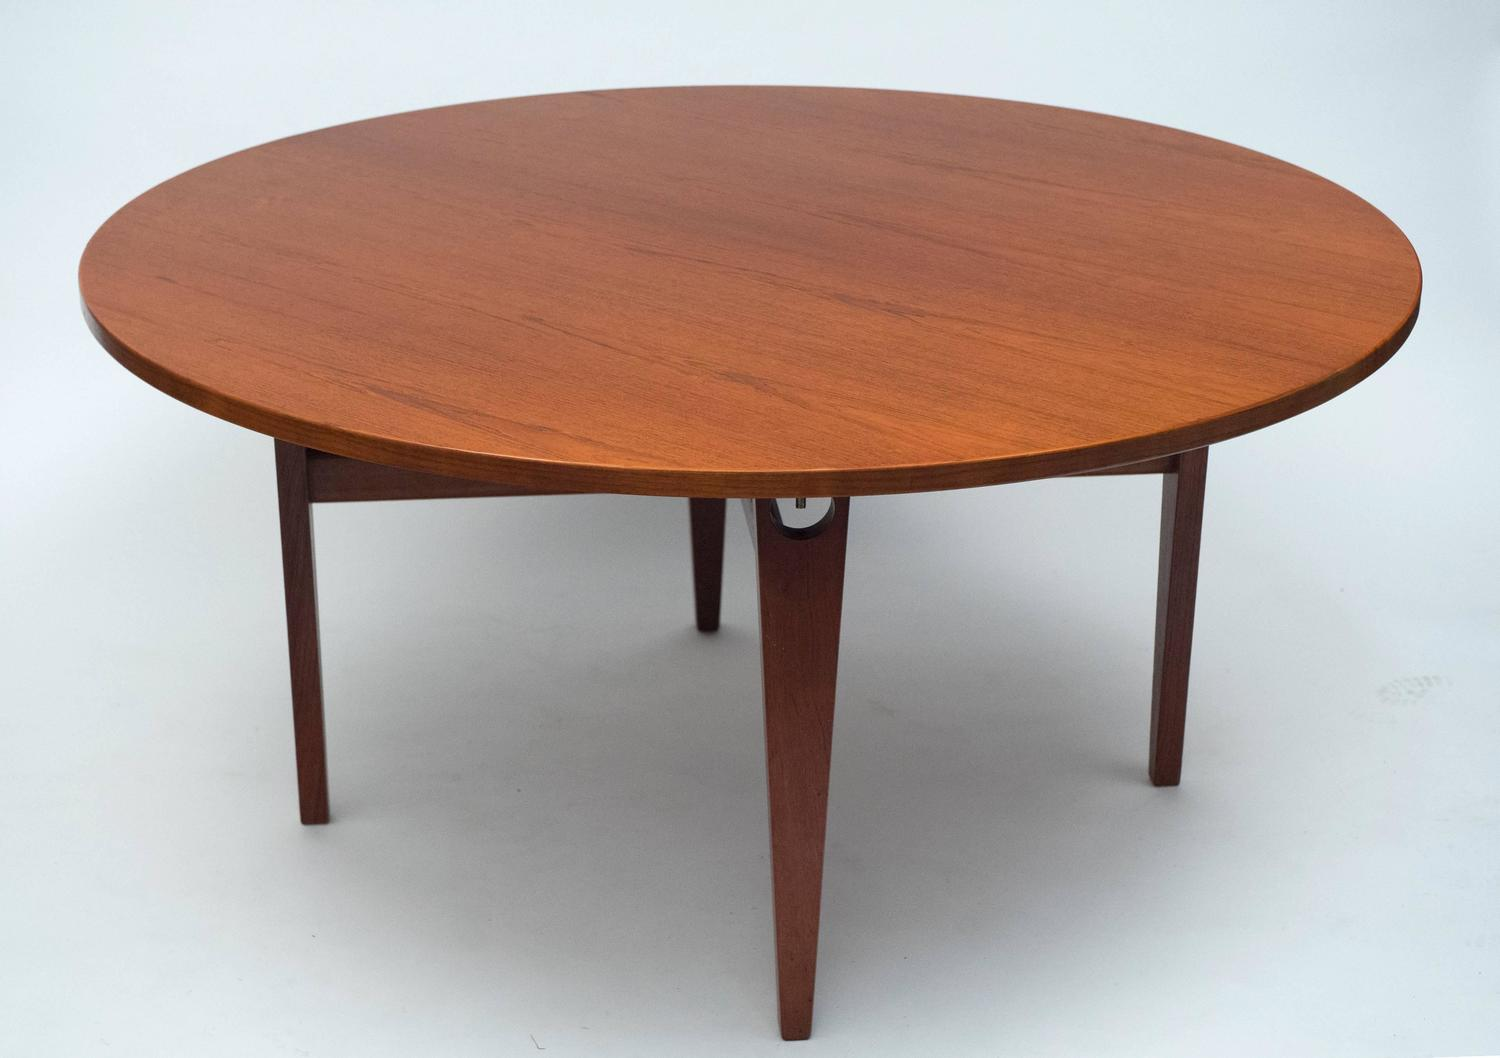 hans wegner round dining table for sale at 1stdibs